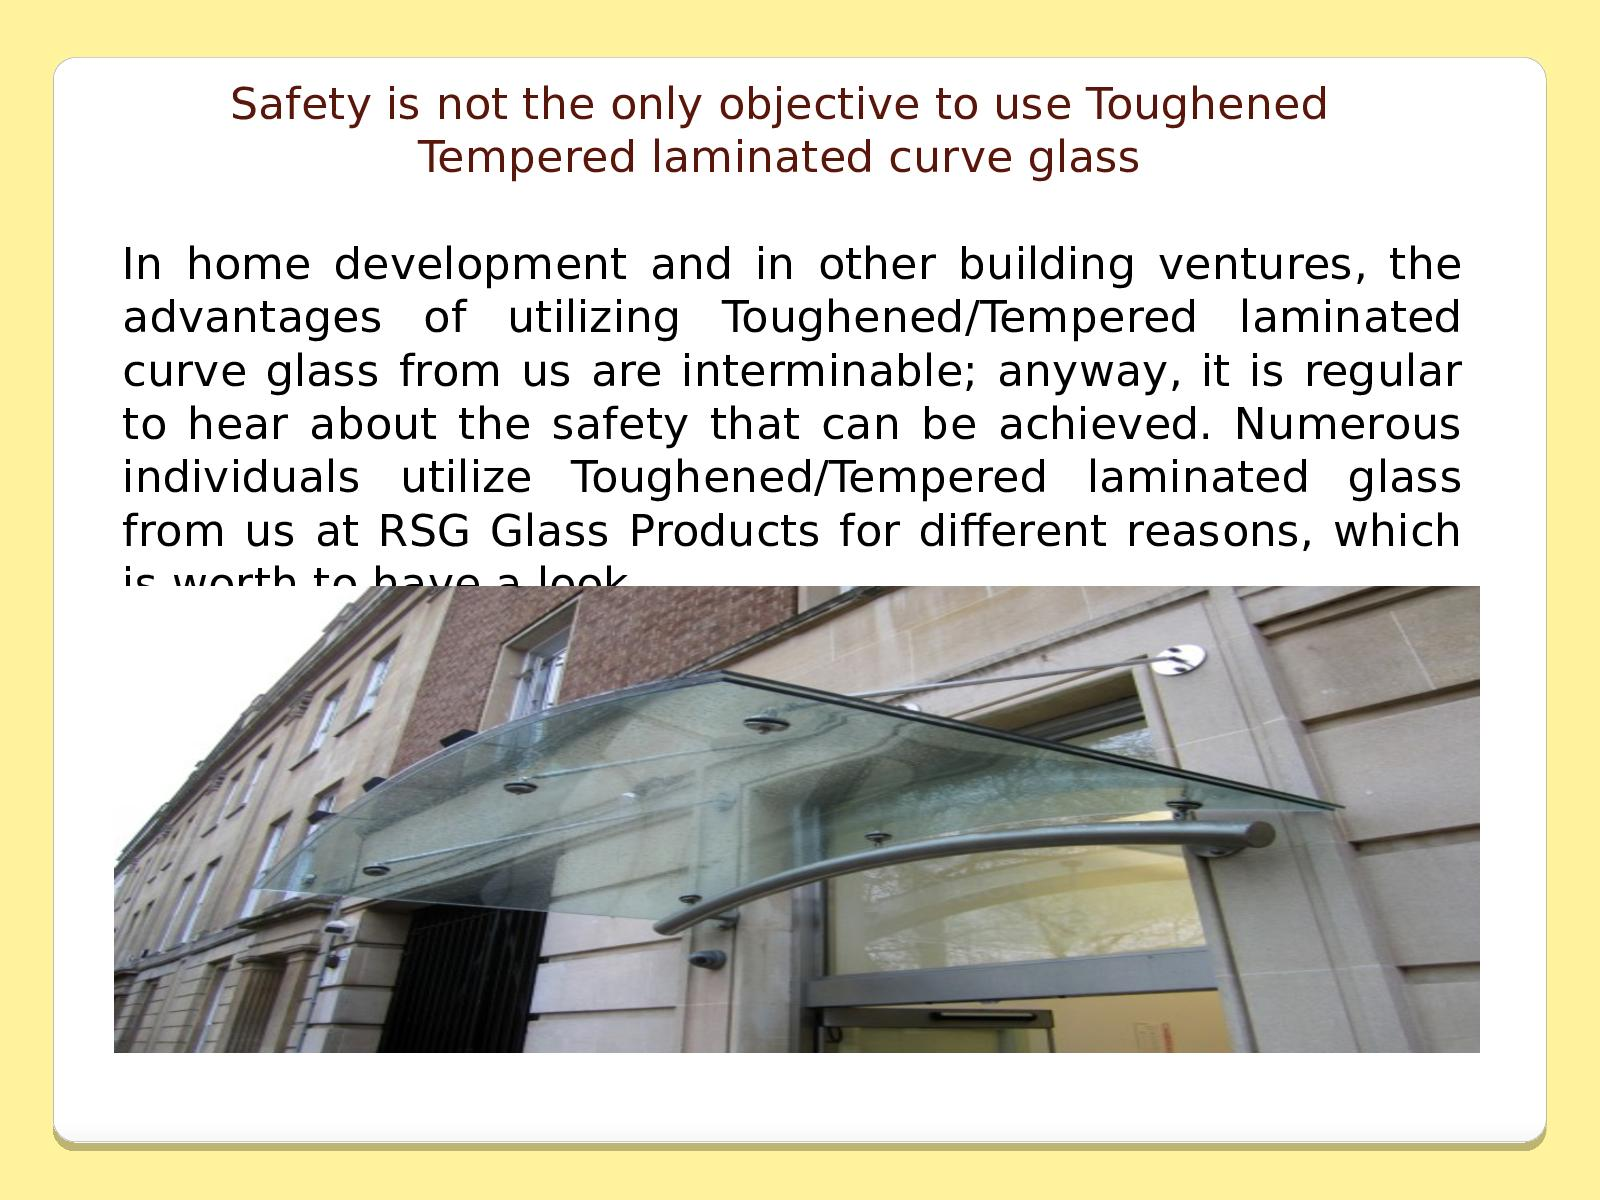 difference between laminated safety glass and toughened glass